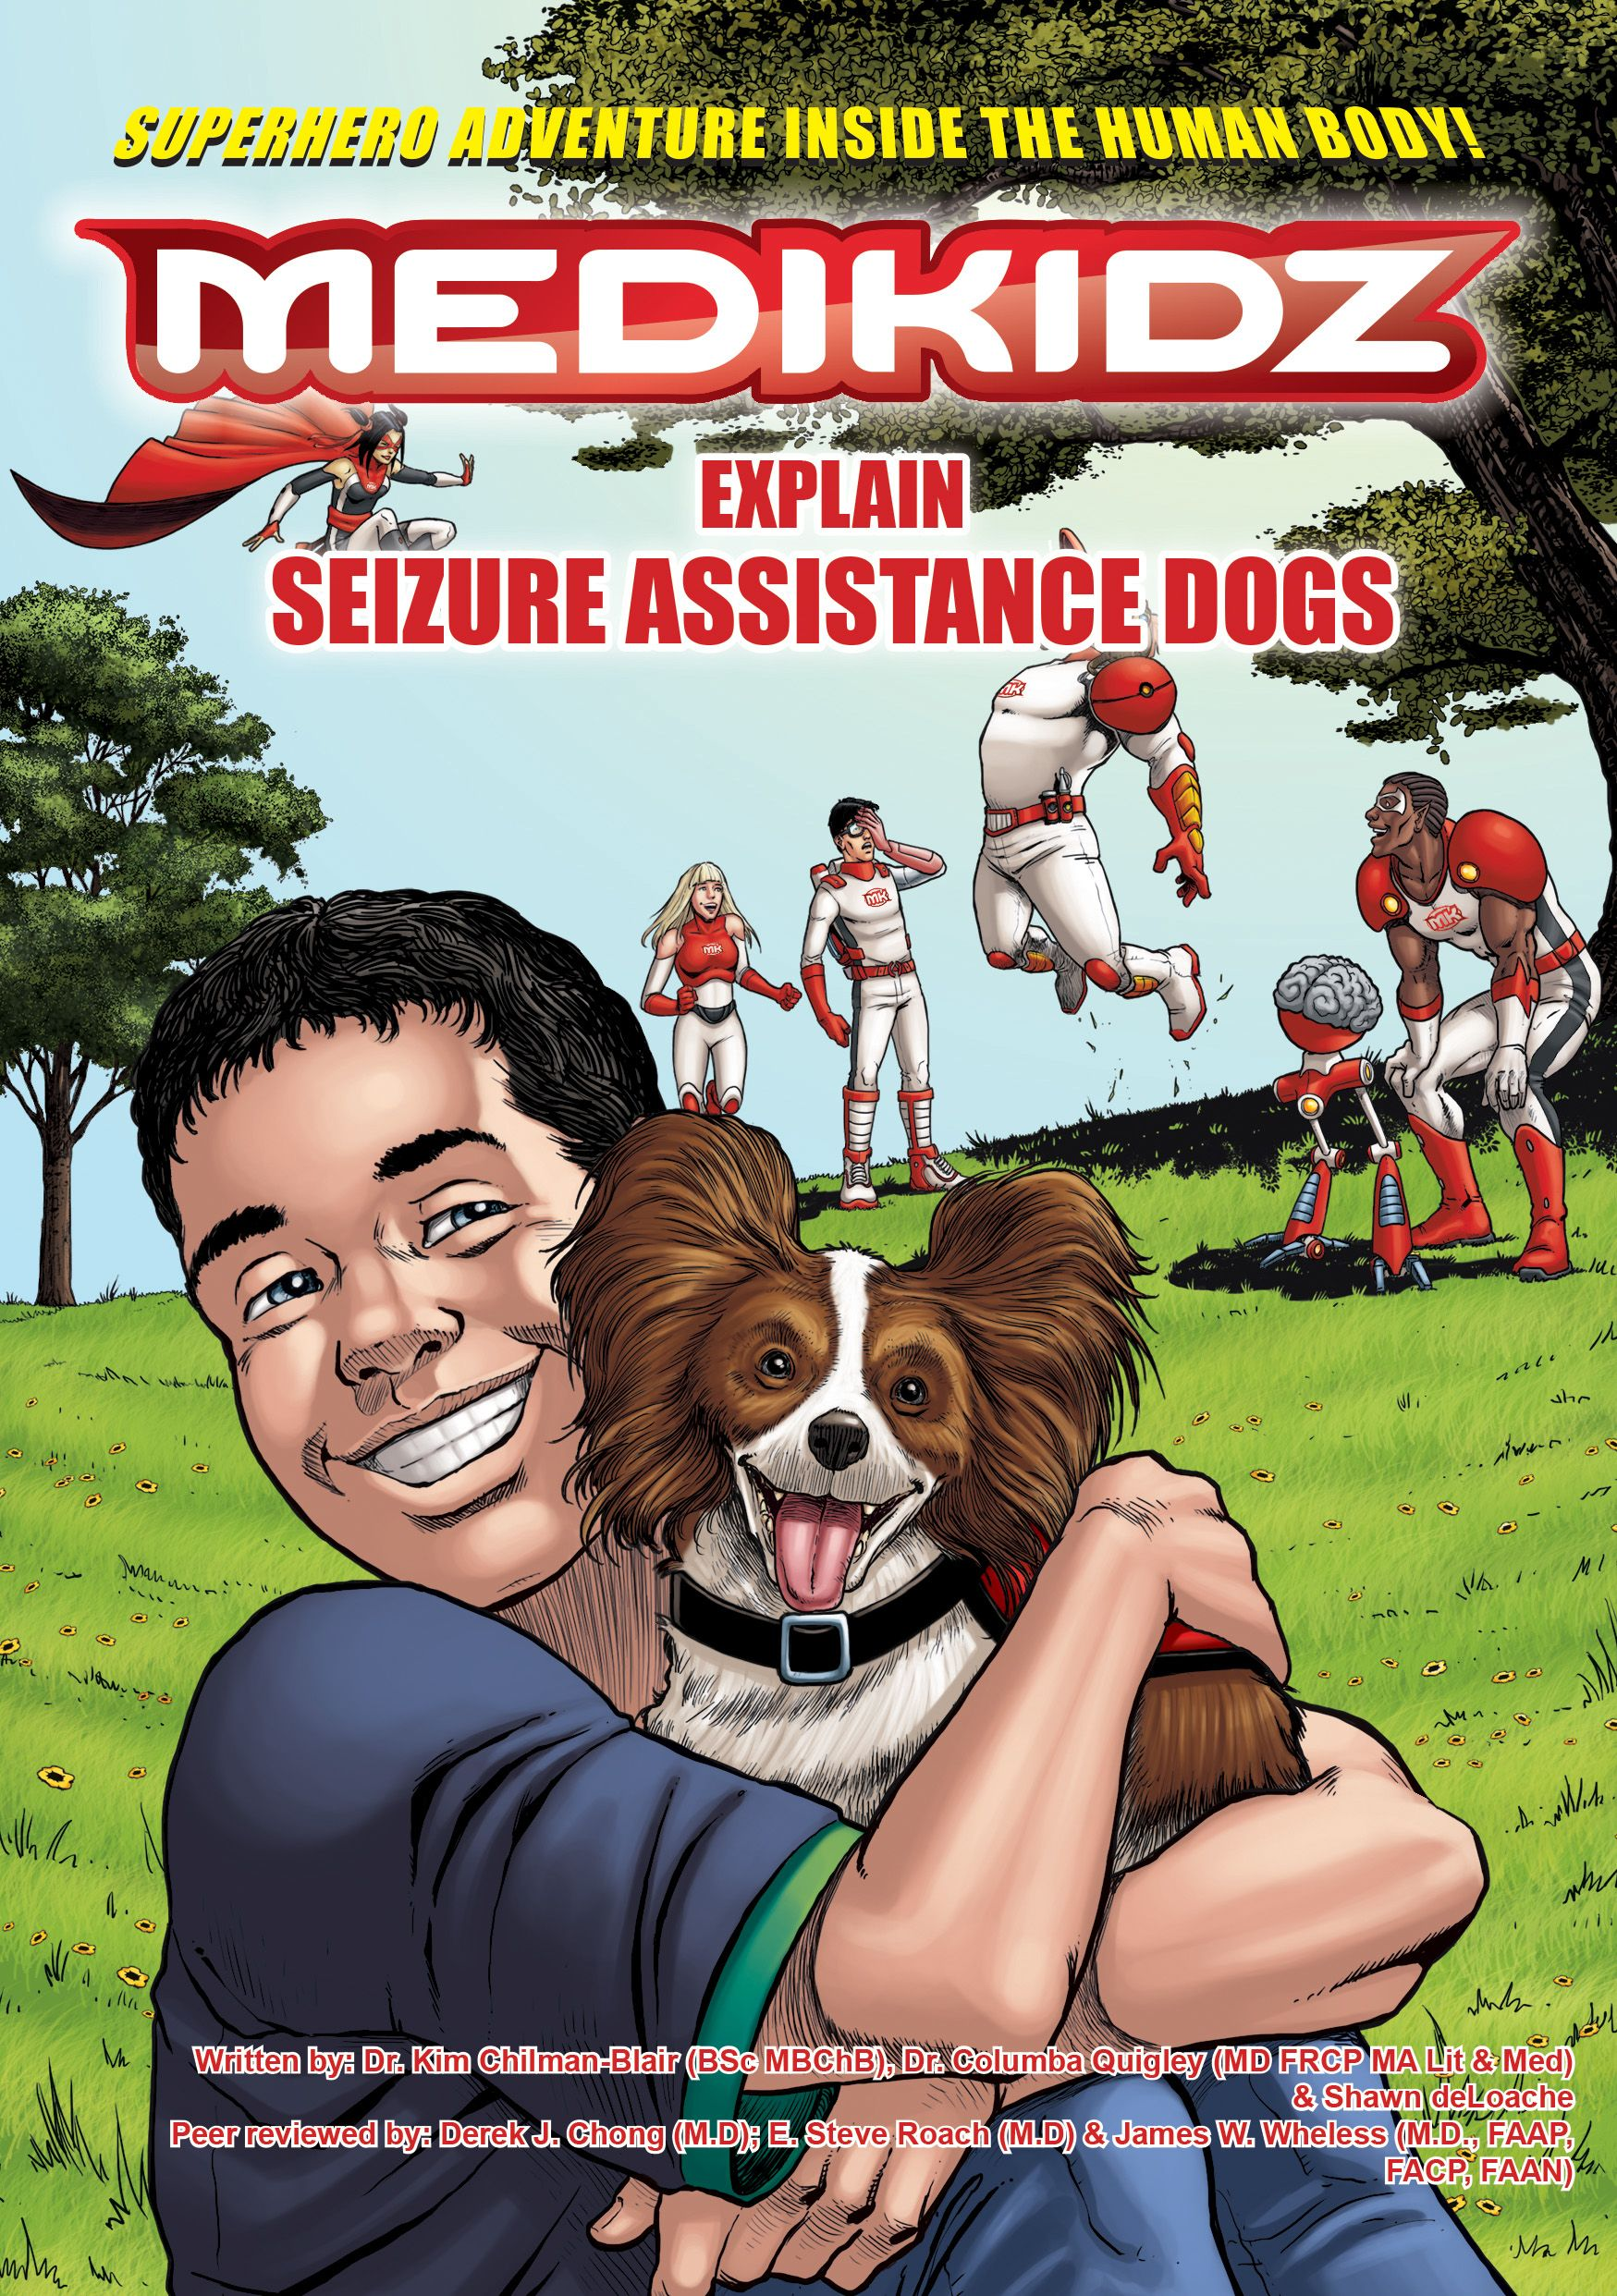 A seizure assistance dog named flame is a comic book hero